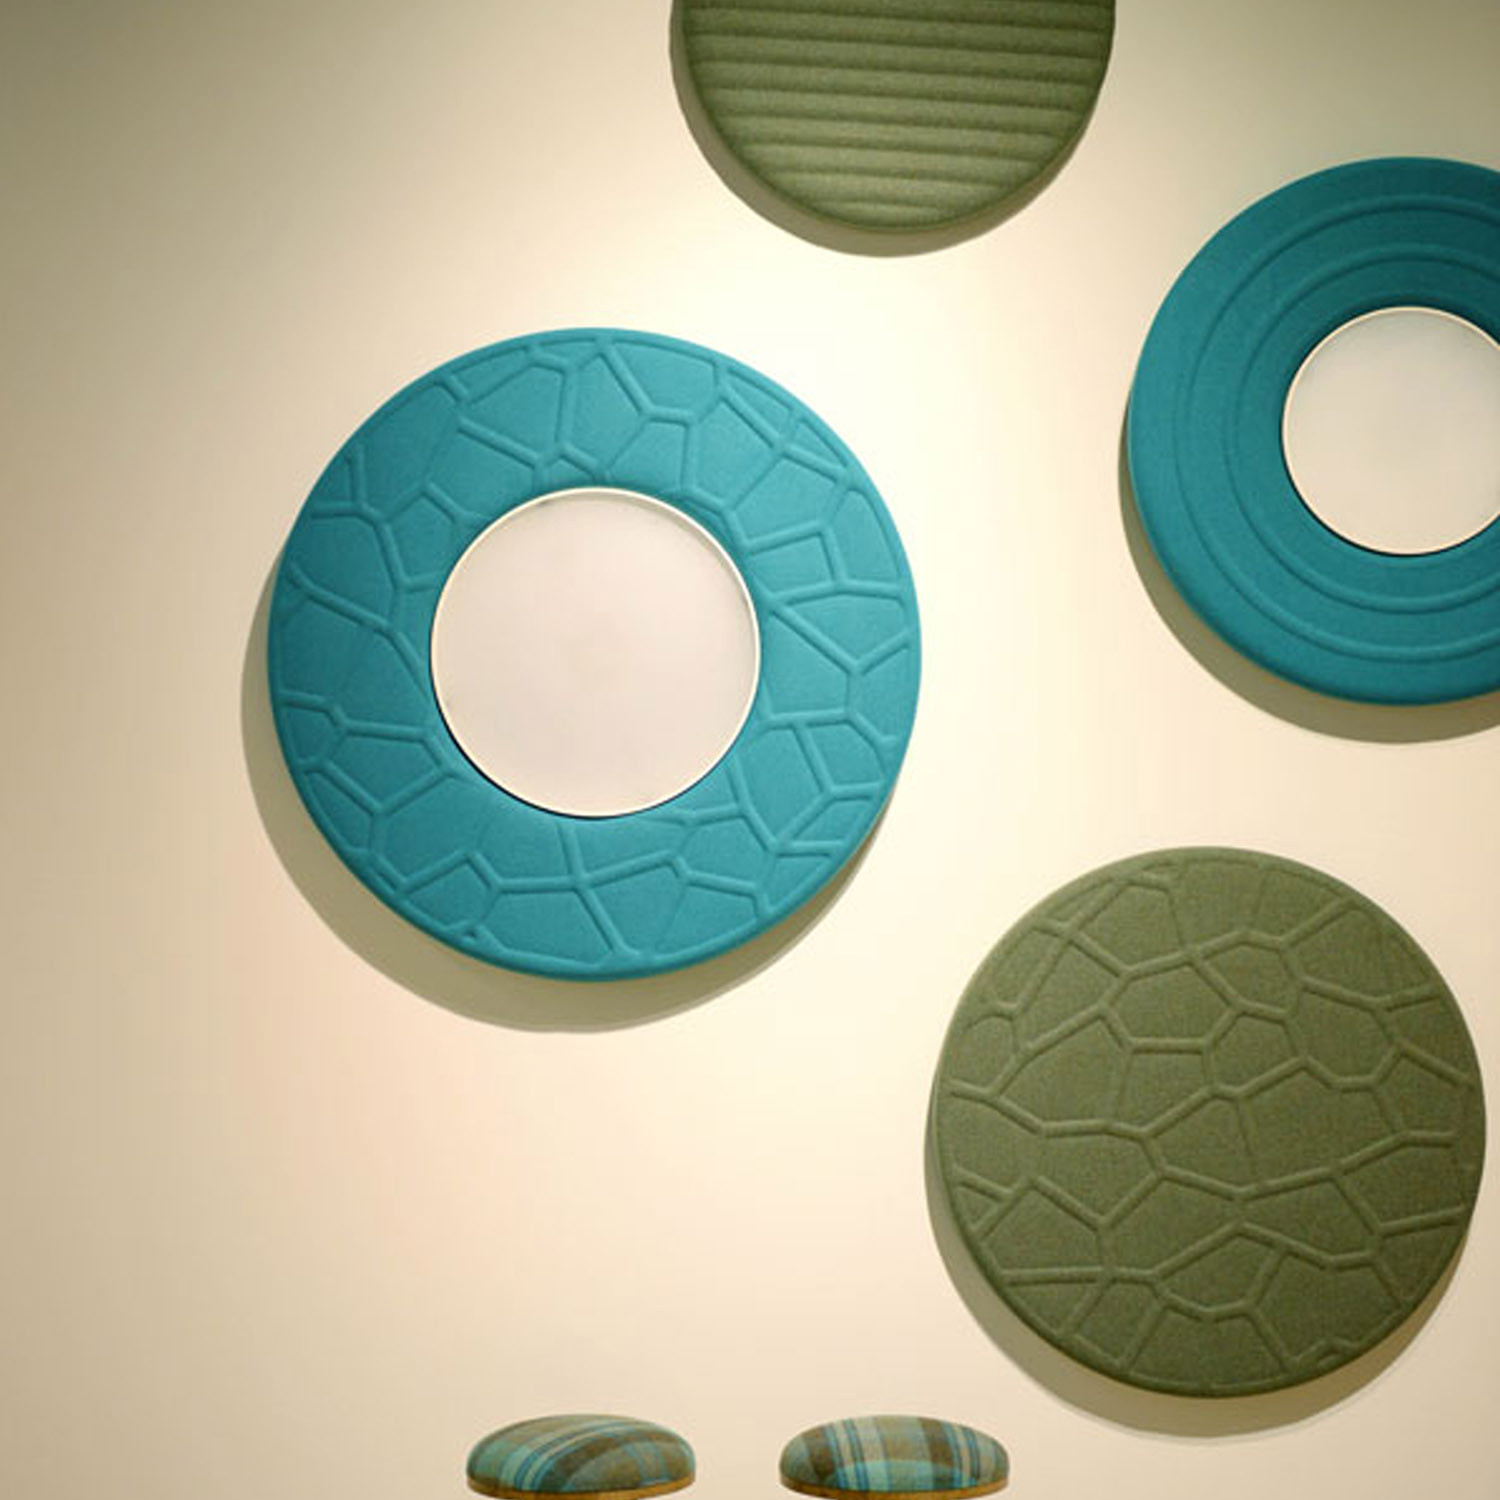 BuzziDonut Acoustic Wall Panel